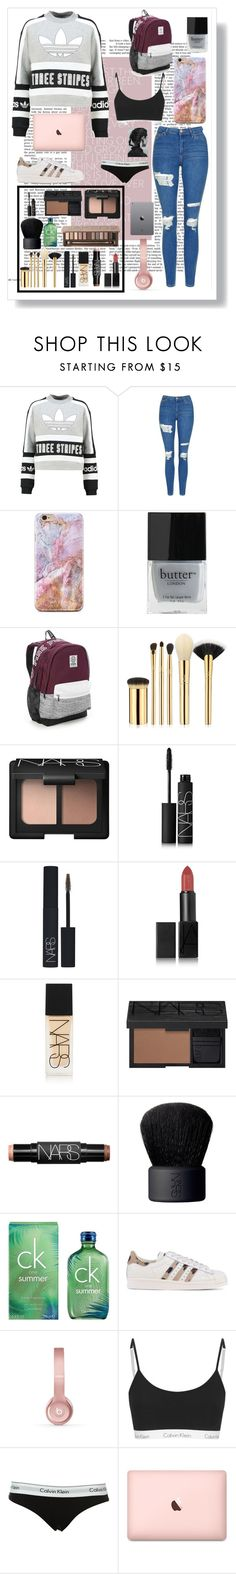 """""""i like shopping.."""" by maia-xoxo ❤ liked on Polyvore featuring adidas Originals, Topshop, Butter London, Victoria's Secret, tarte, NARS Cosmetics, Calvin Klein, Beats by Dr. Dre and Urban Decay"""